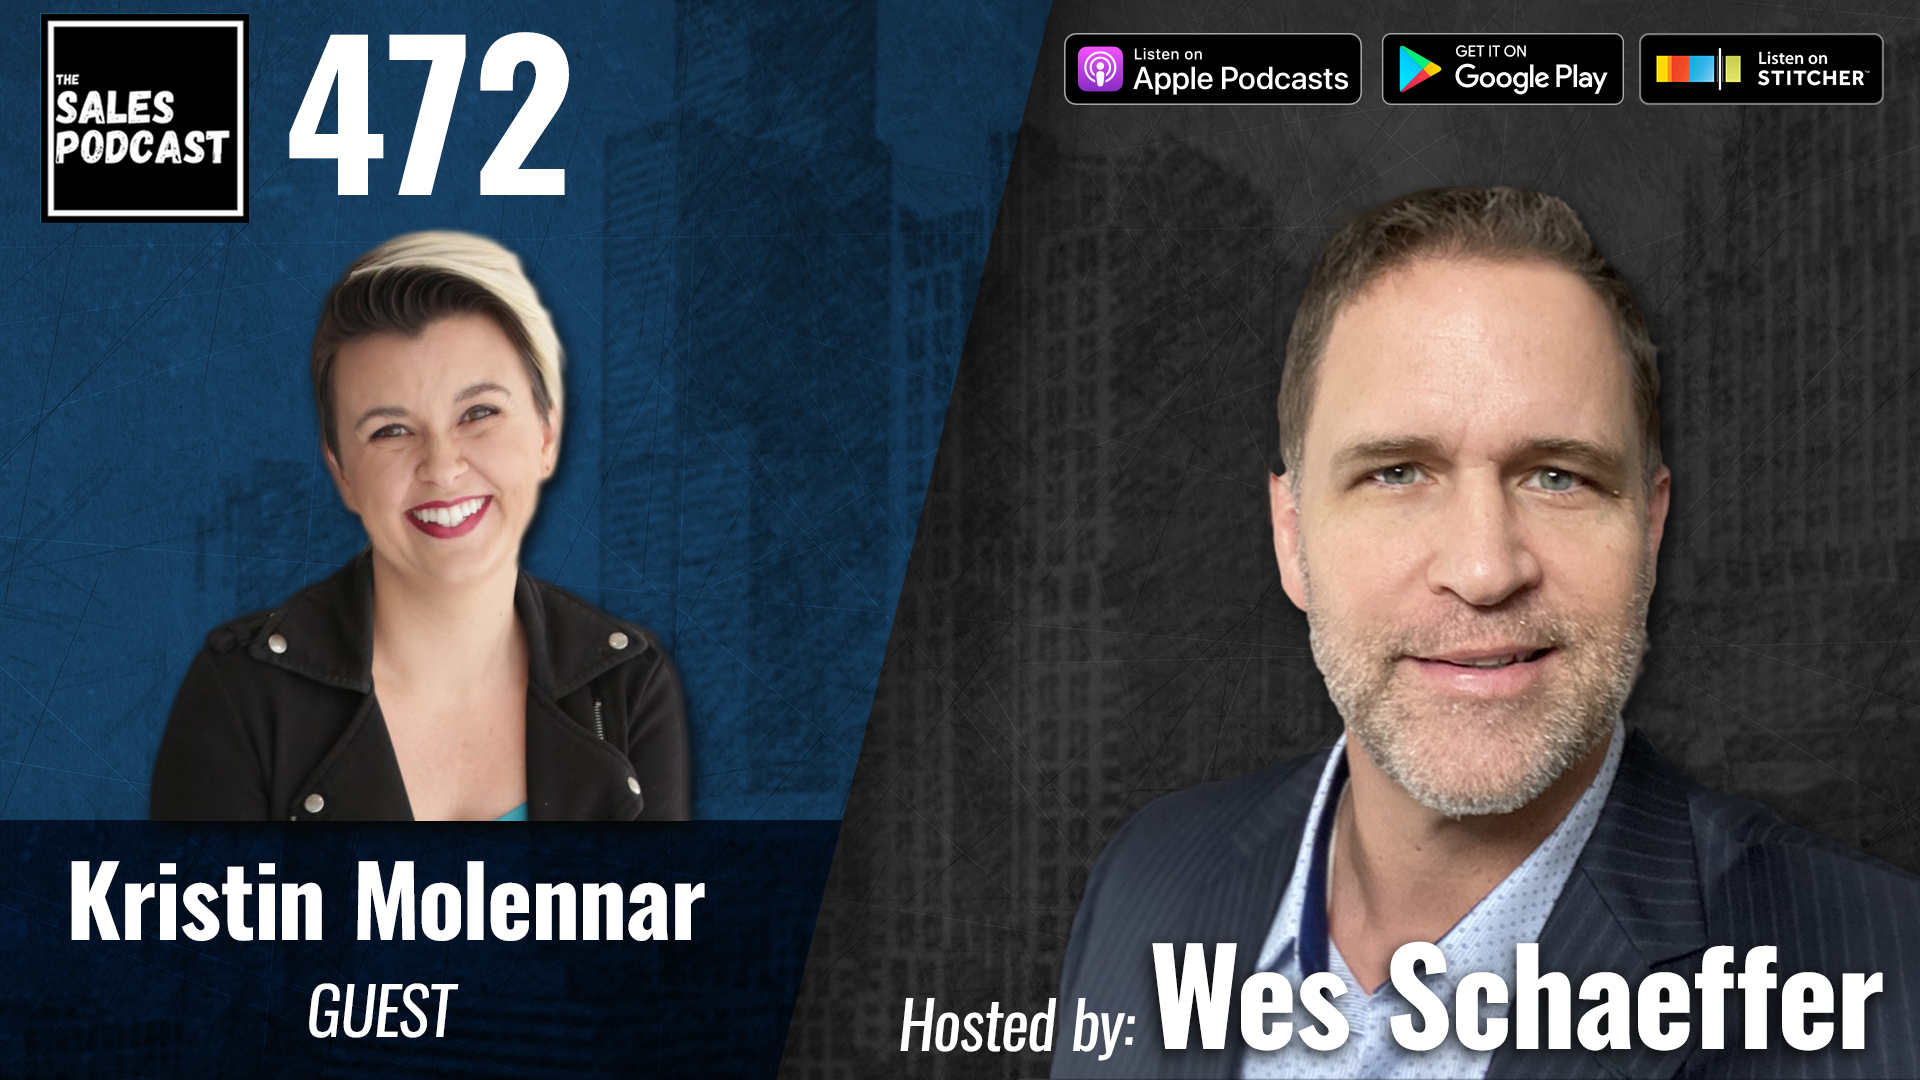 Kristin Molenaar: How To Do Podcast Marketing To Grow Your Sales on The Sales Podcast with Wes Schaeffer, The Sales Whisperer®